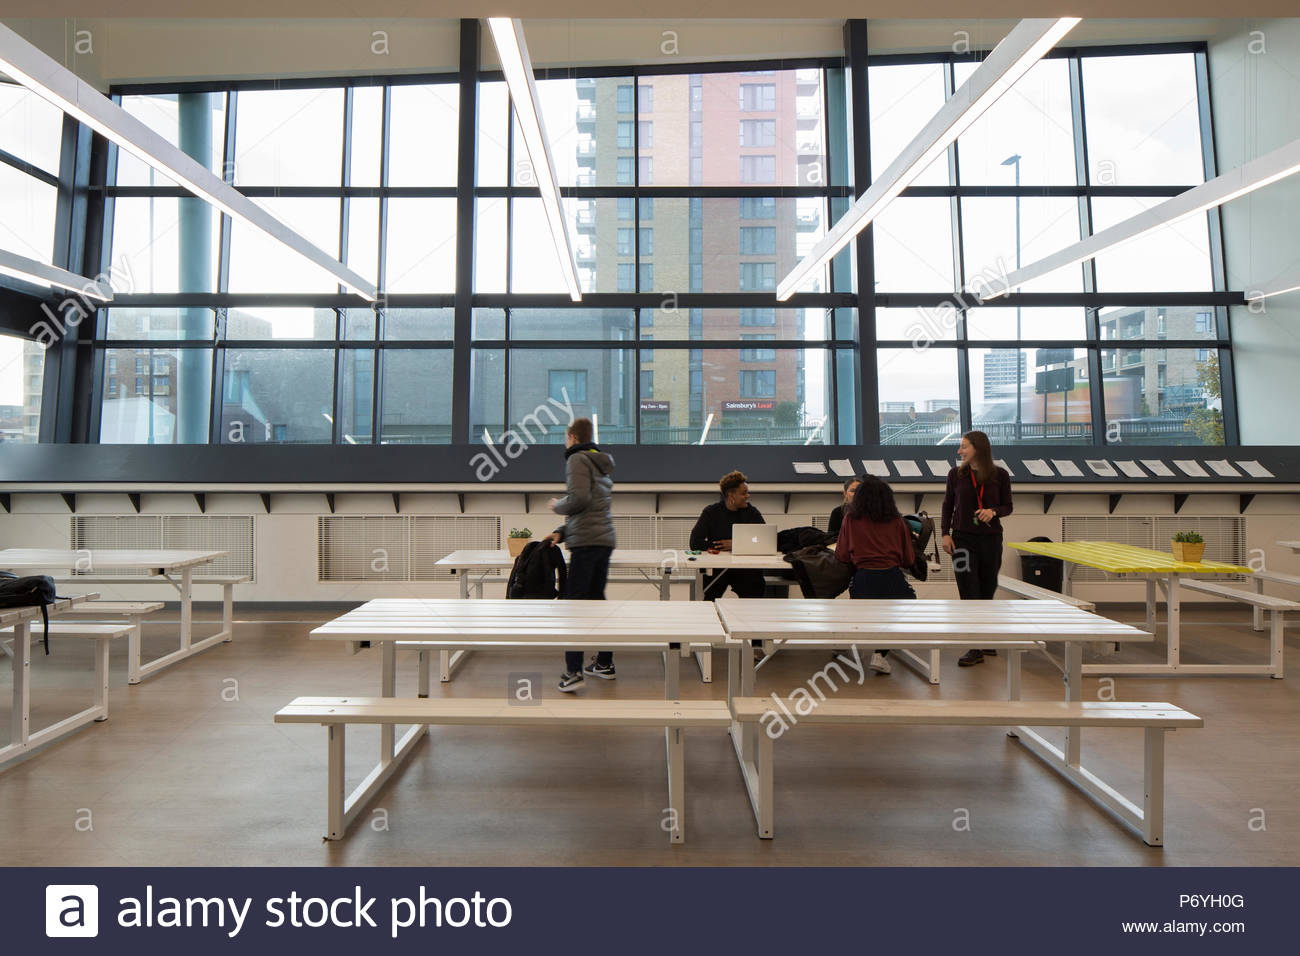 View of canteen. ELAM, London, United Kingdom. Architect: Hunters South, 2018. - Stock Image